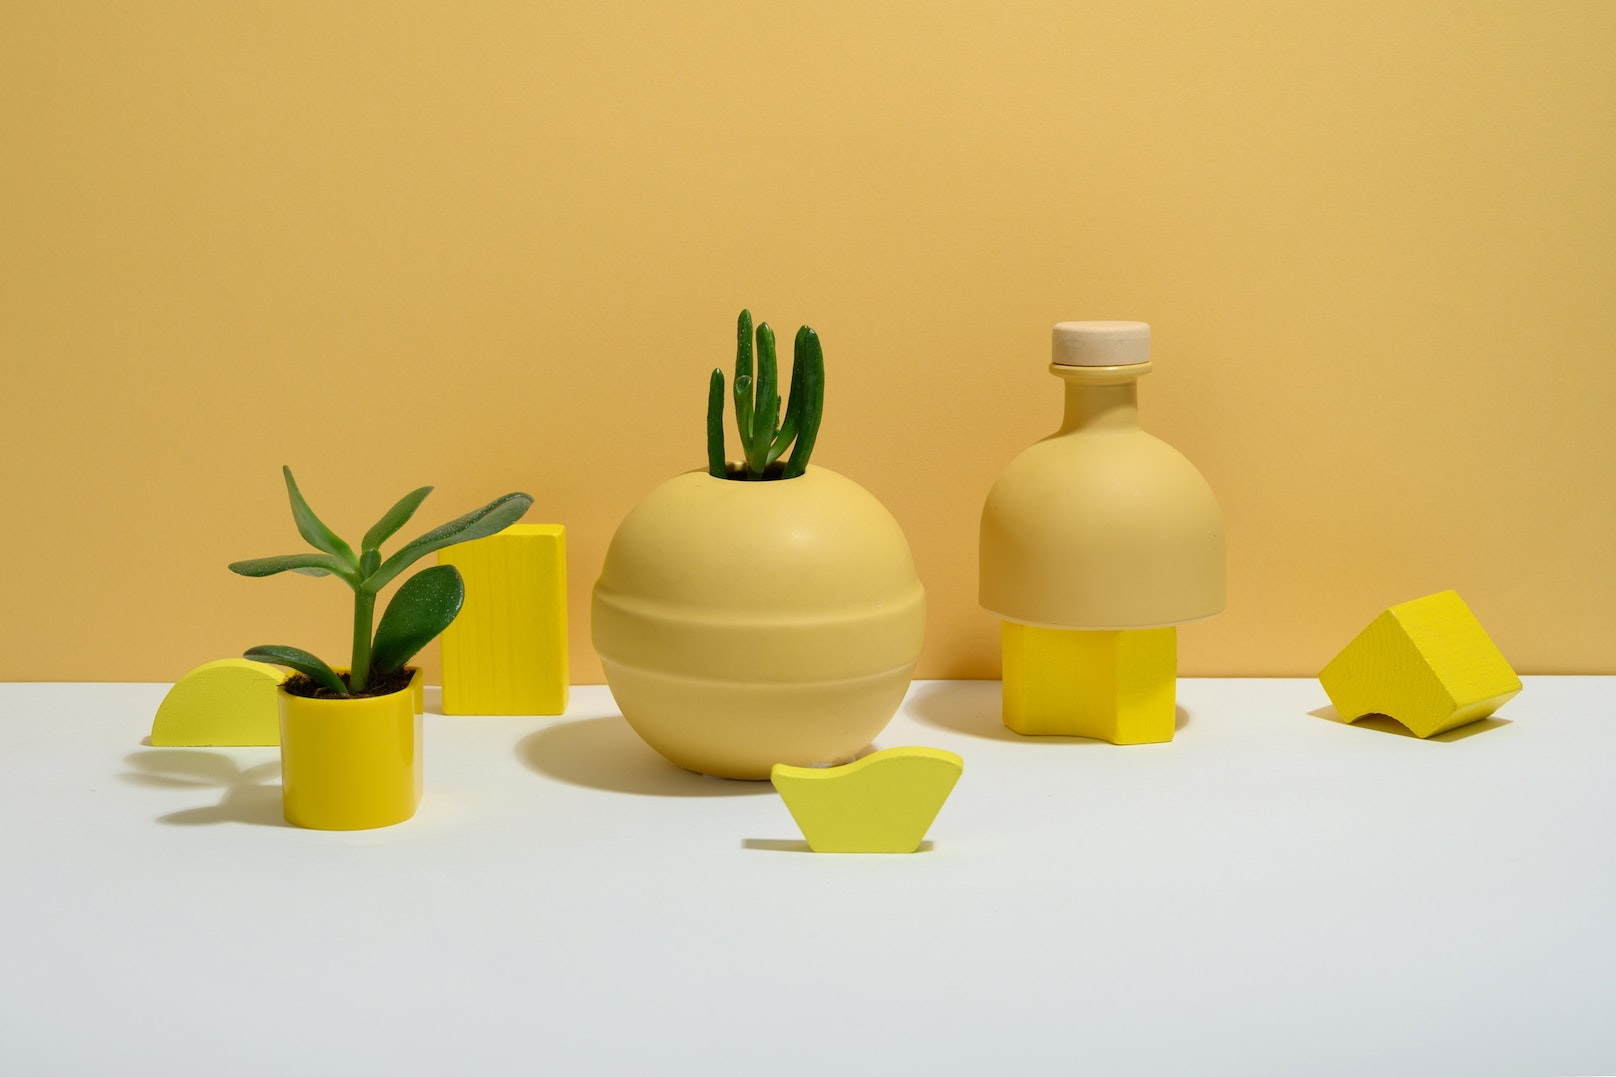 Yellow objects and plants in a yellow-white studio decor